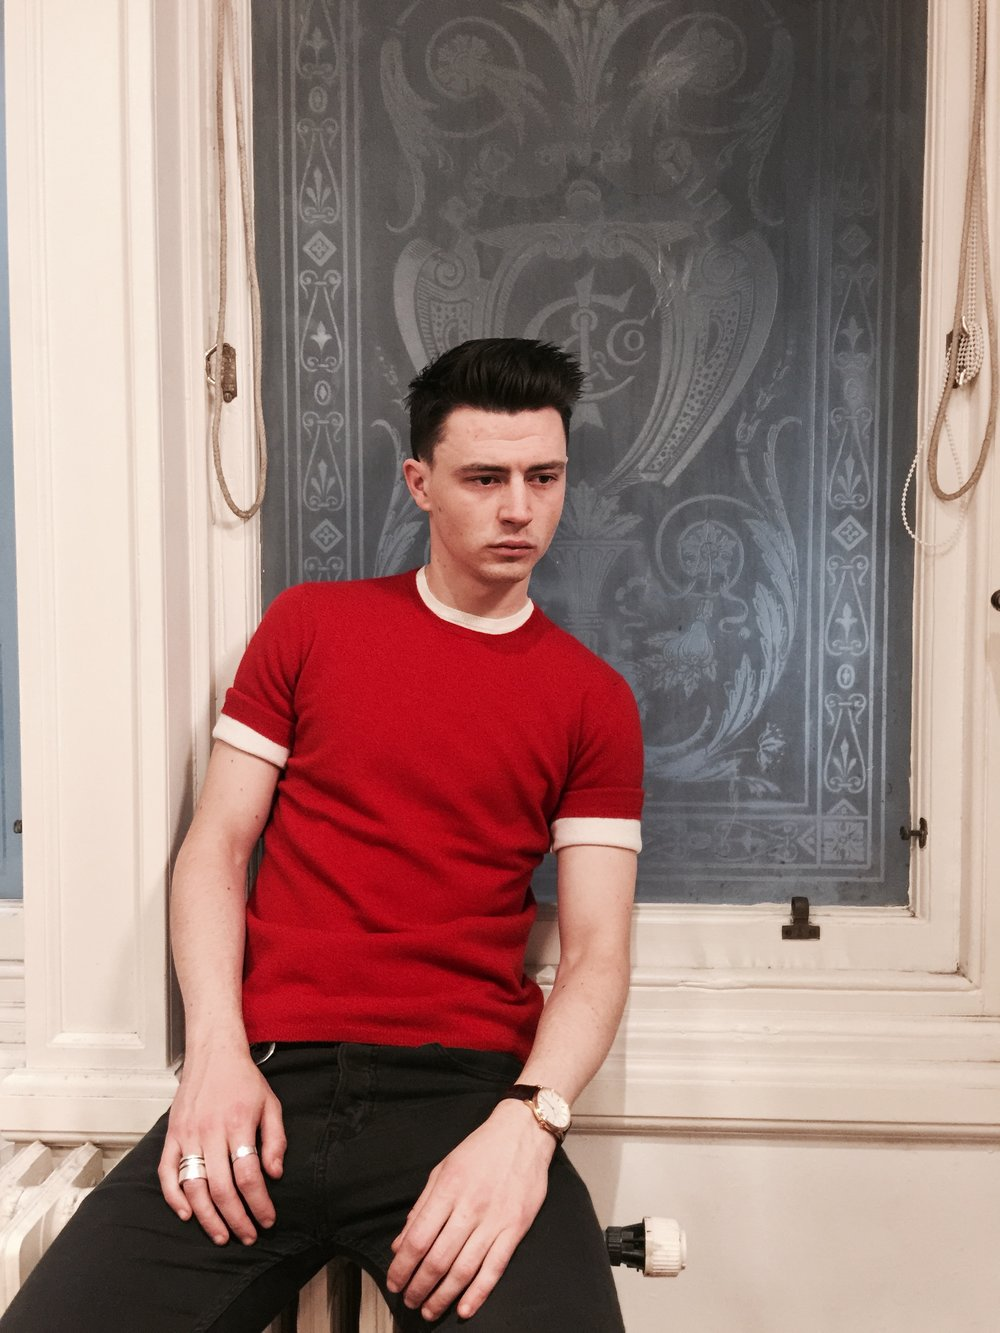 cross-cashmere-red-t-shirt-made-in-scotland-lynne-mccrossan-william-lockie.jpg